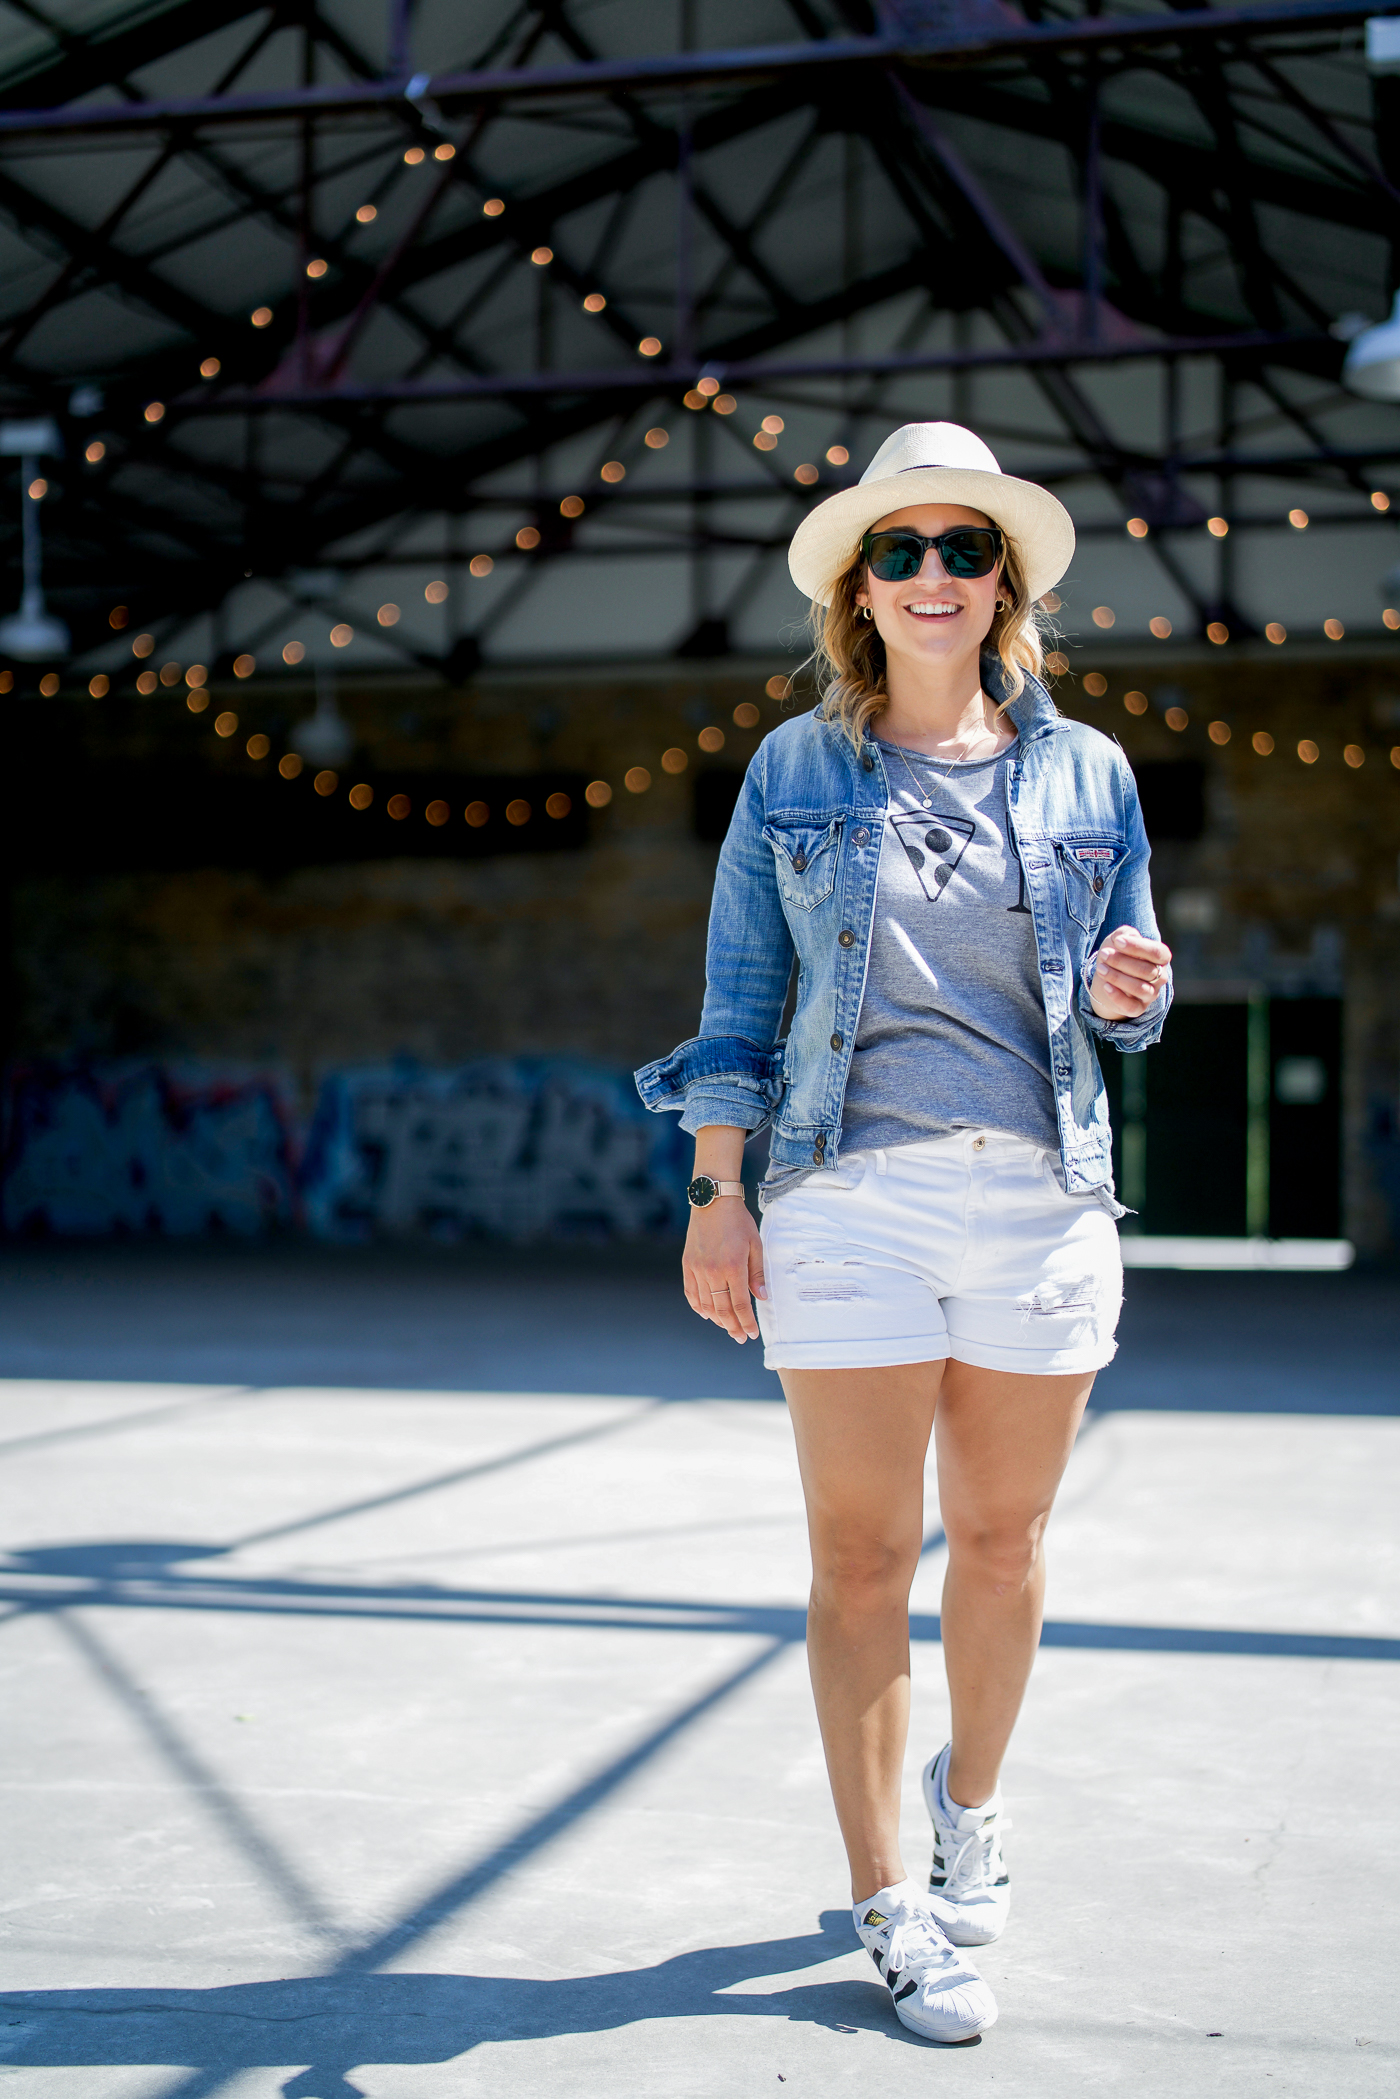 Simple casual summer outfit idea, wearing a Chaser Brand graphic tee with White Shorts at a denim jacket